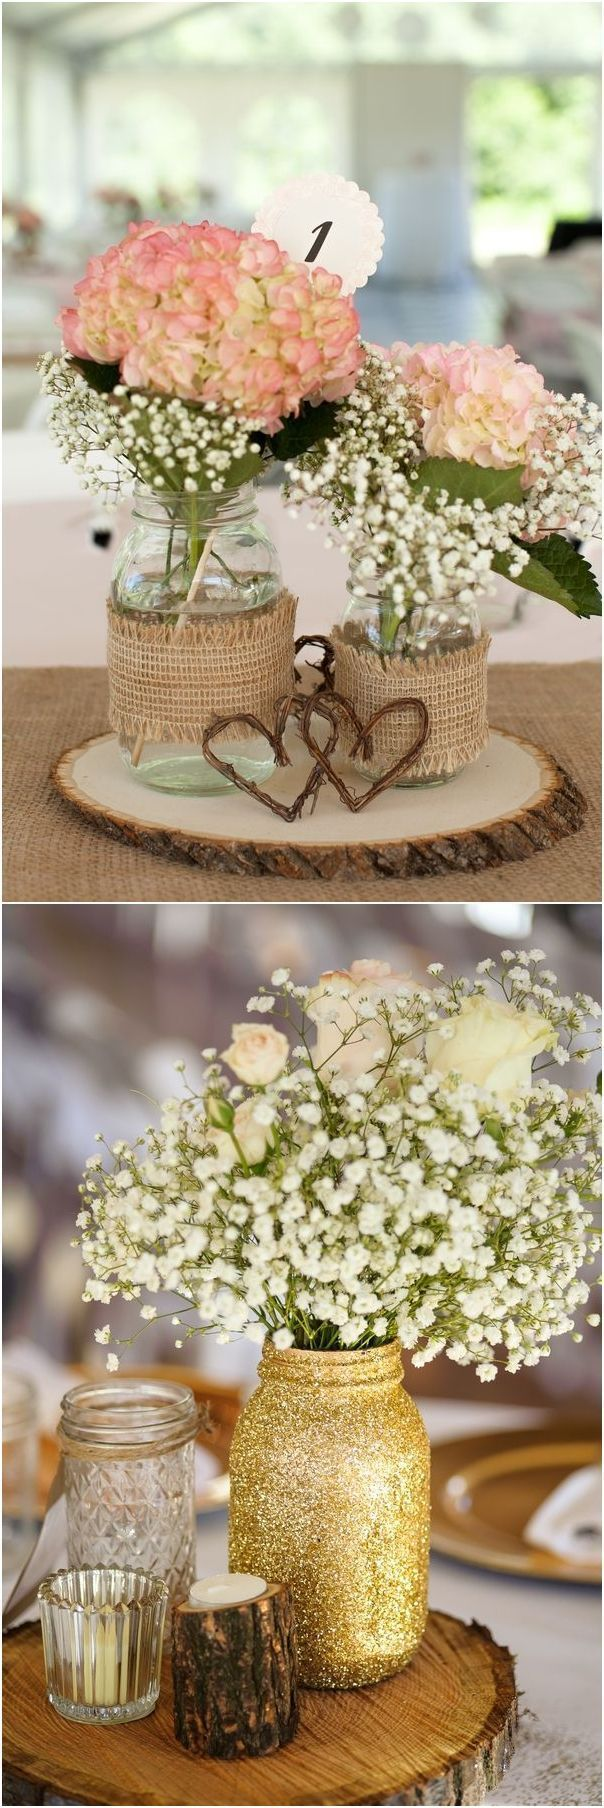 Rustic mason jar wedding centerpieces #wedding #weddingideas #centerpieces / www